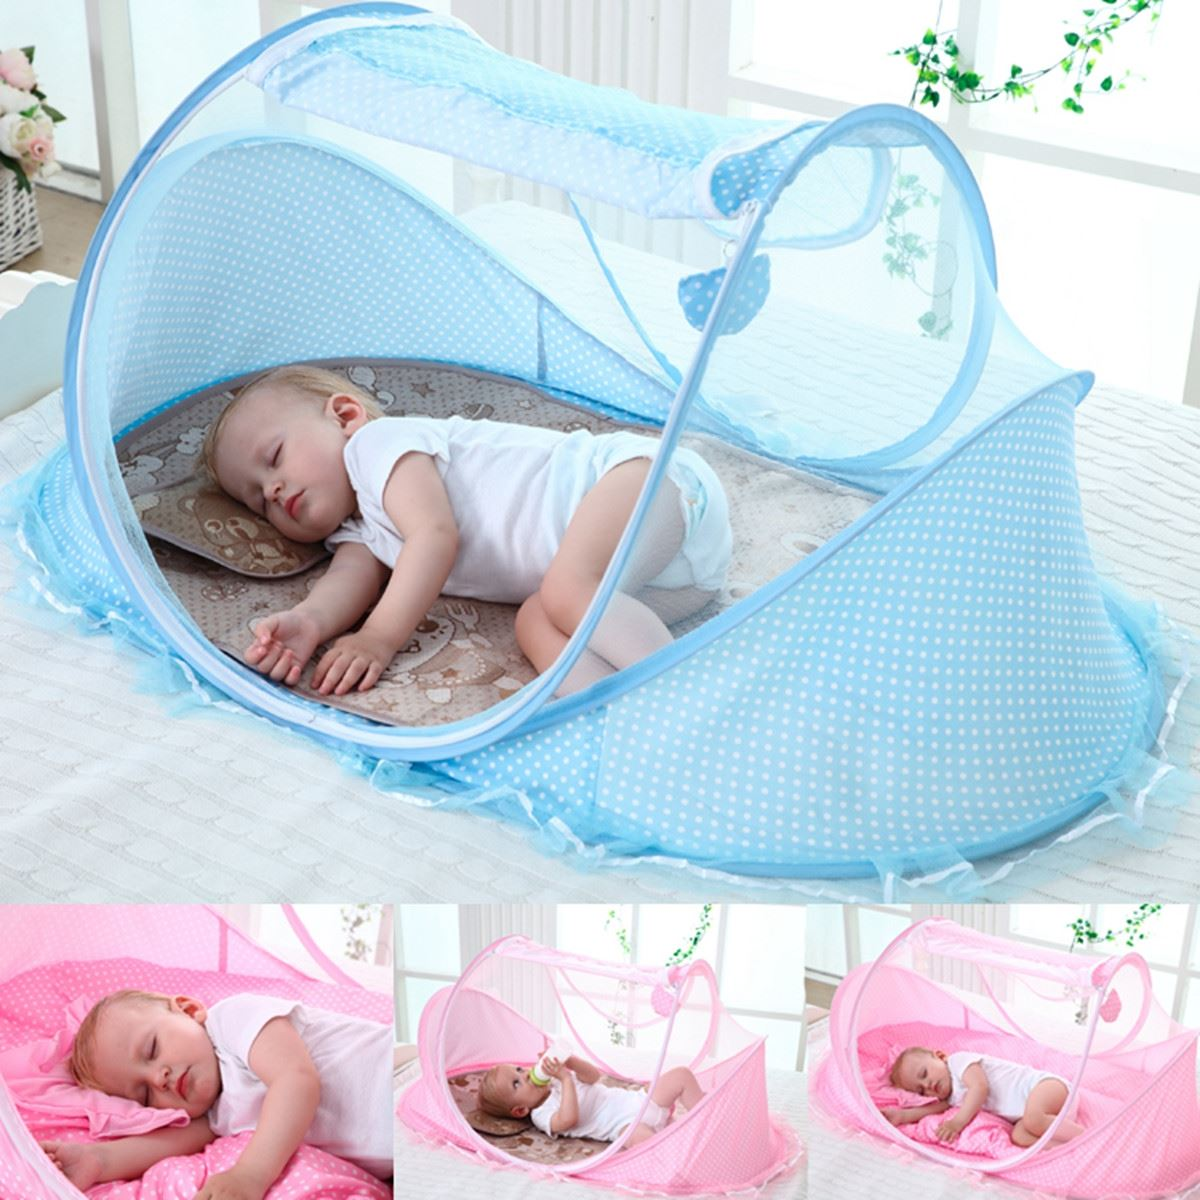 Crib tents for babies - Infant Baby Folding Ger Type Mosquito Nursery Cradle Insect Bed Crib Ne T Canopy Tent